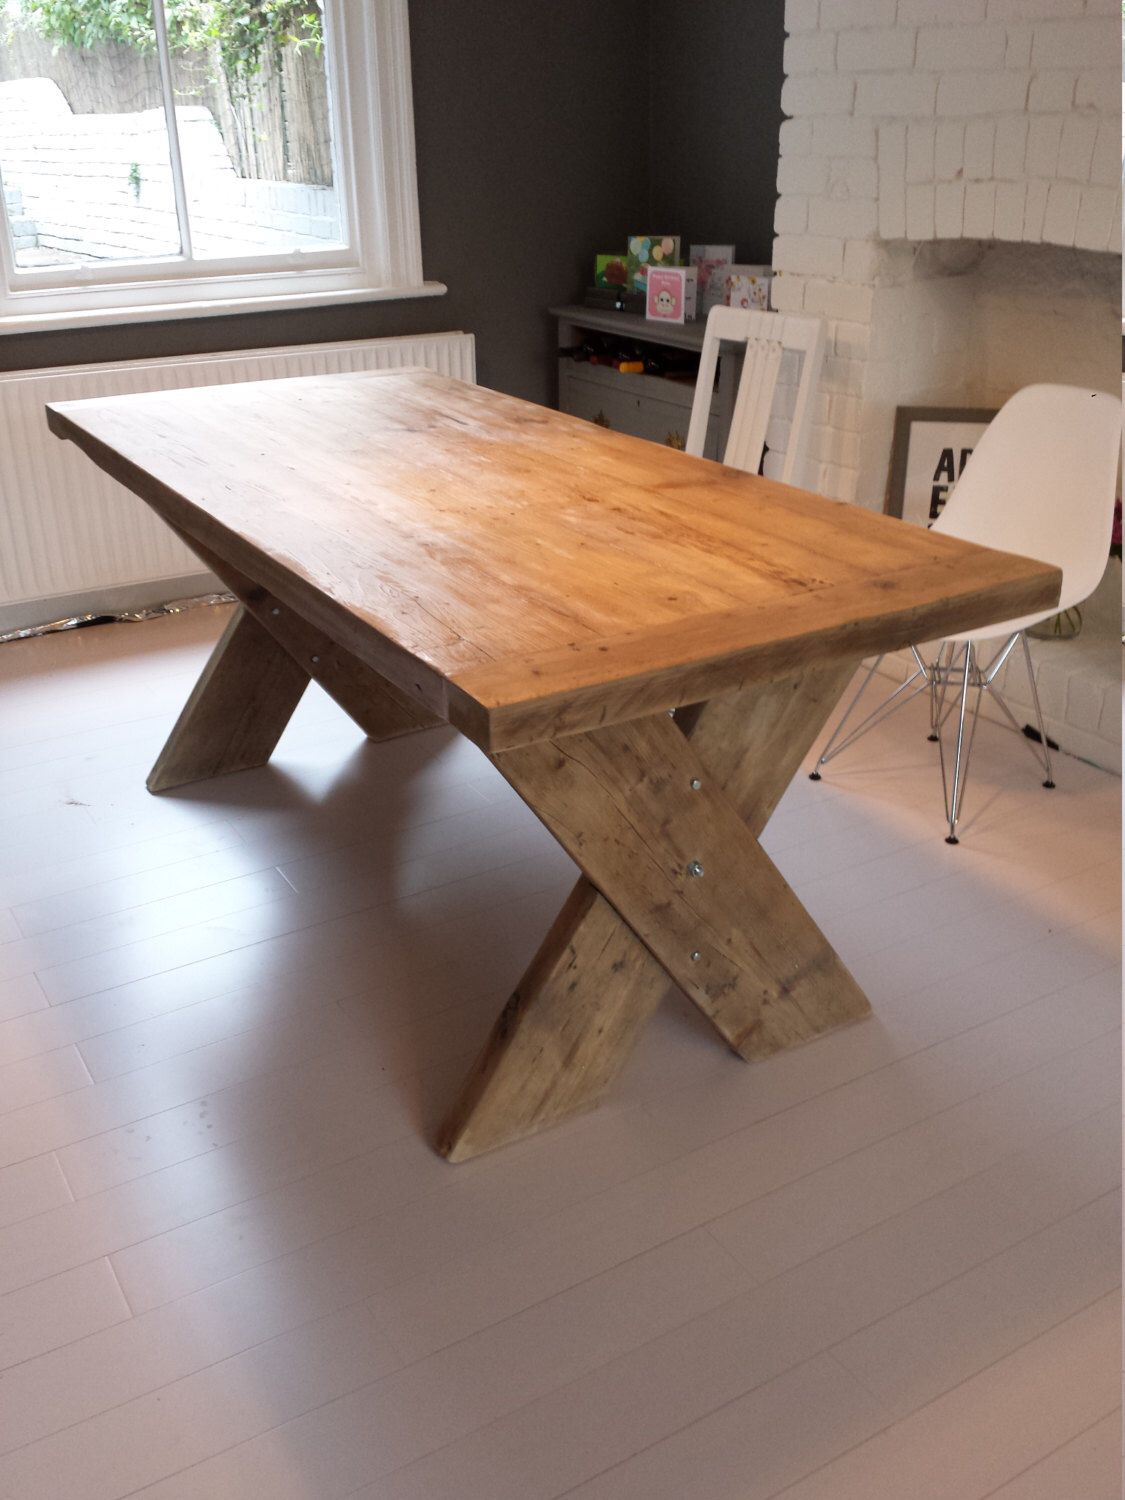 Reclaimed wood rustic dining table with Cross X legs